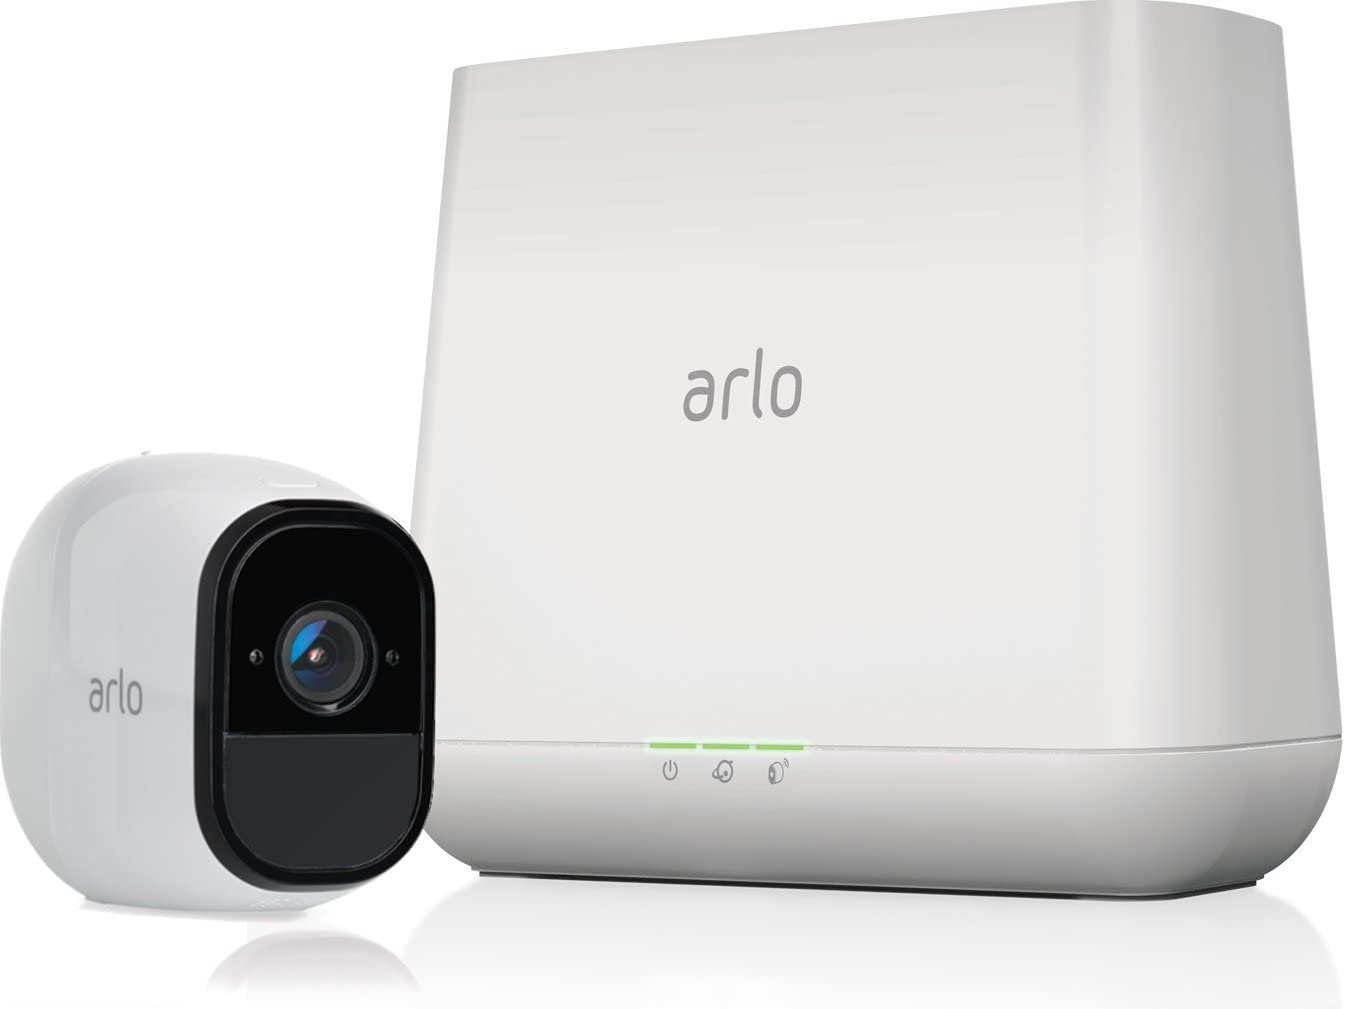 Arlo Pro Smart Security System with 1 Arlo Pro Camera